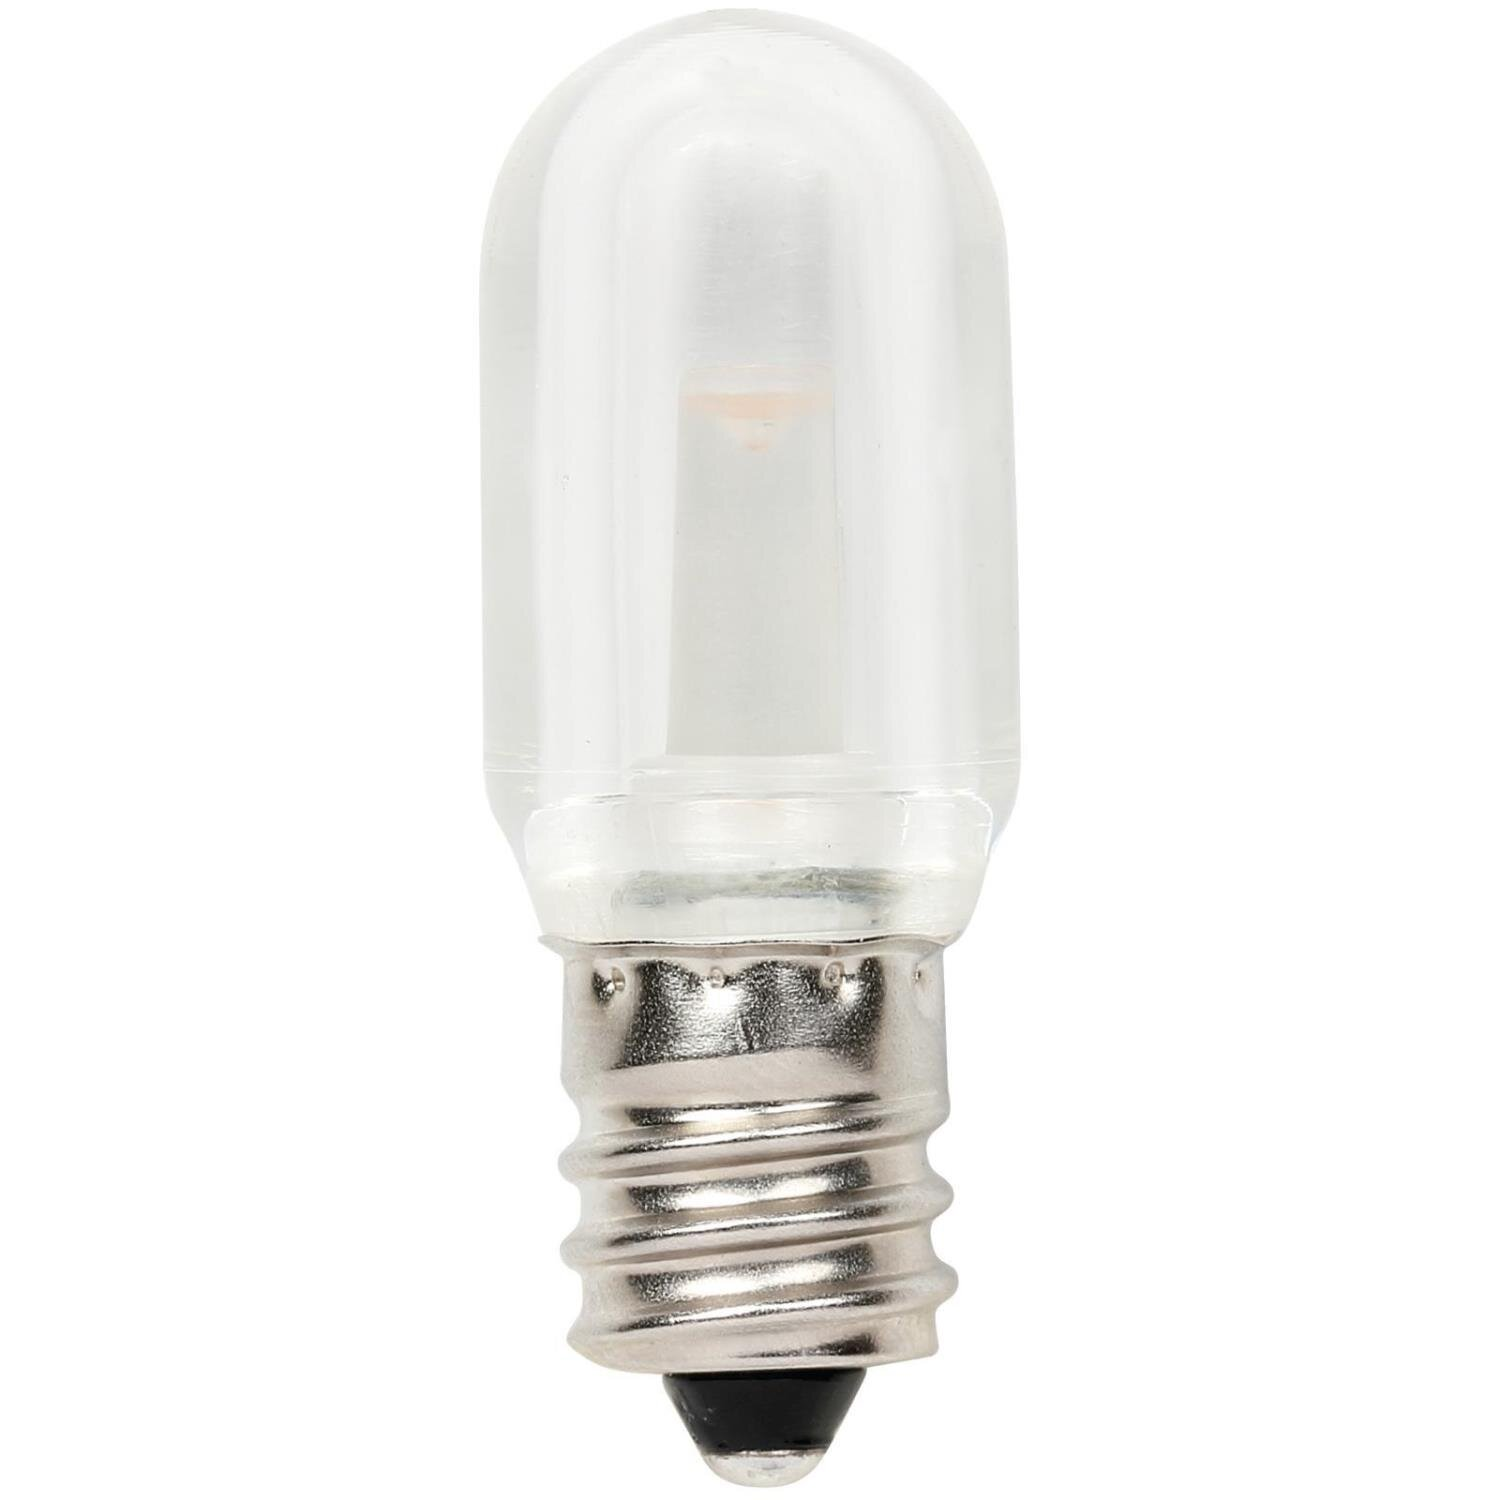 sparkfun to electronics size comparison the light news dfm bulb bulbs race led bottom and can